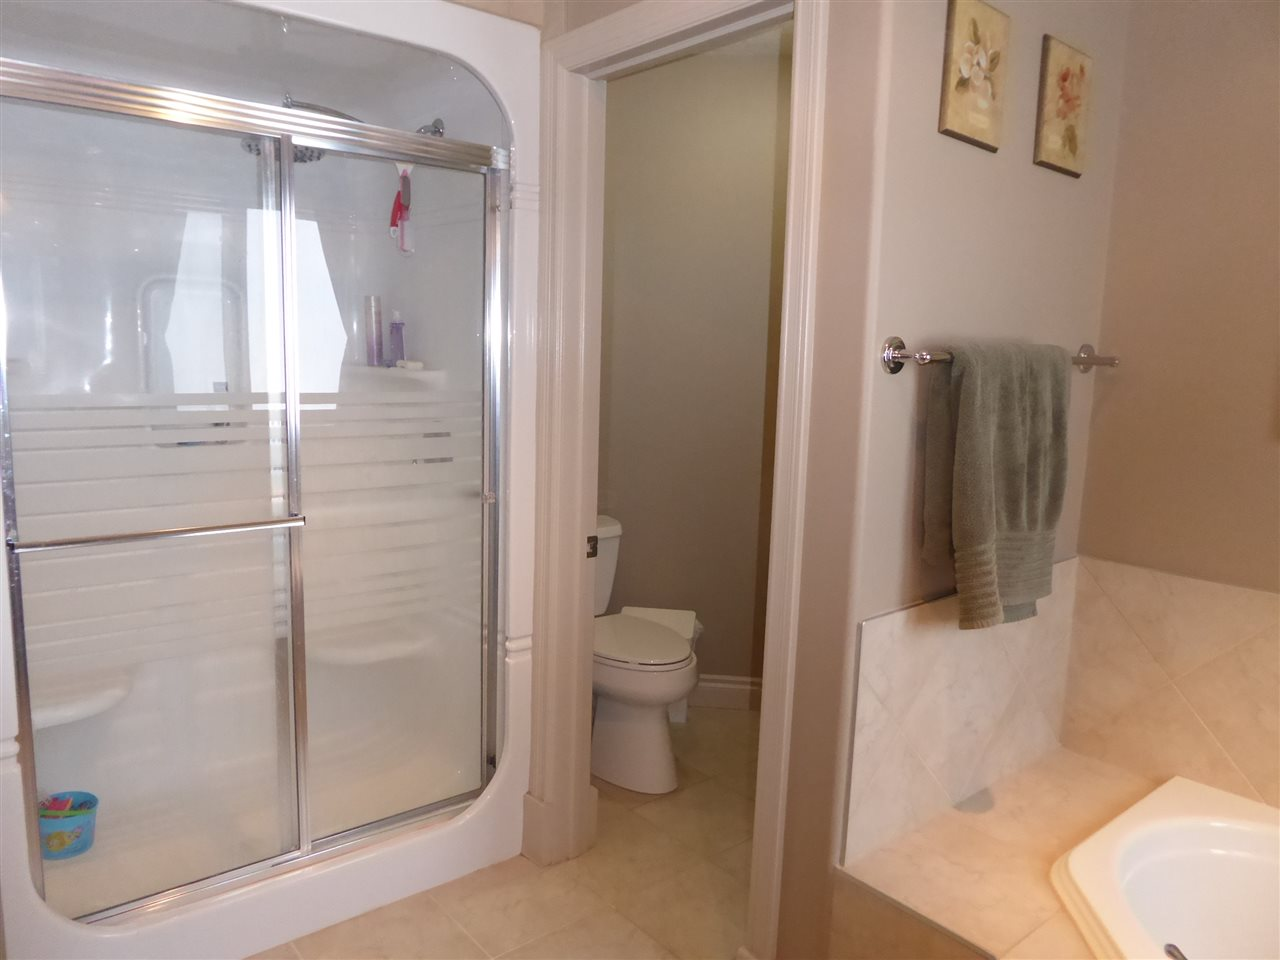 Ensuite Bathroom Edmonton 934 hope wy nw in edmonton: zone 58 house for sale : mls® # e4041259